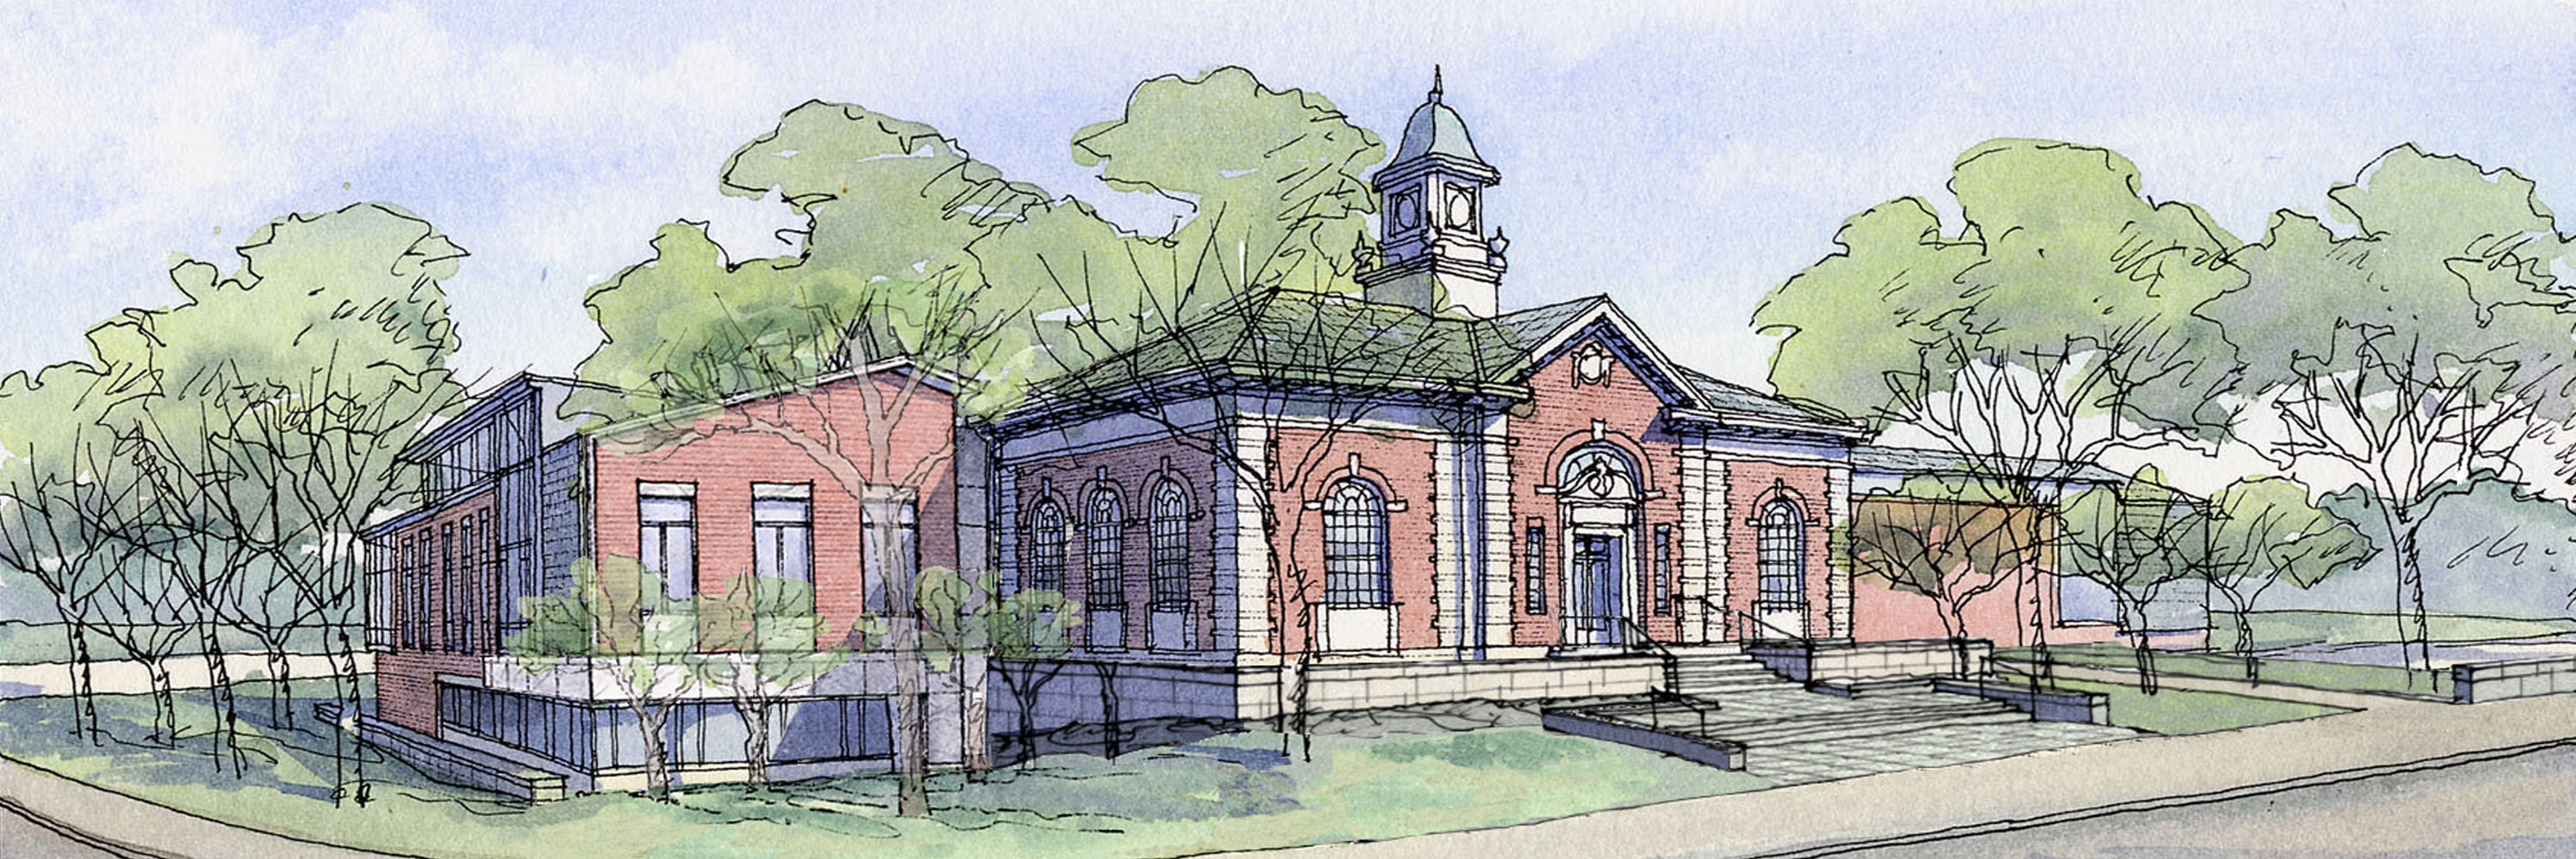 Illustration of Needham Free Public Library